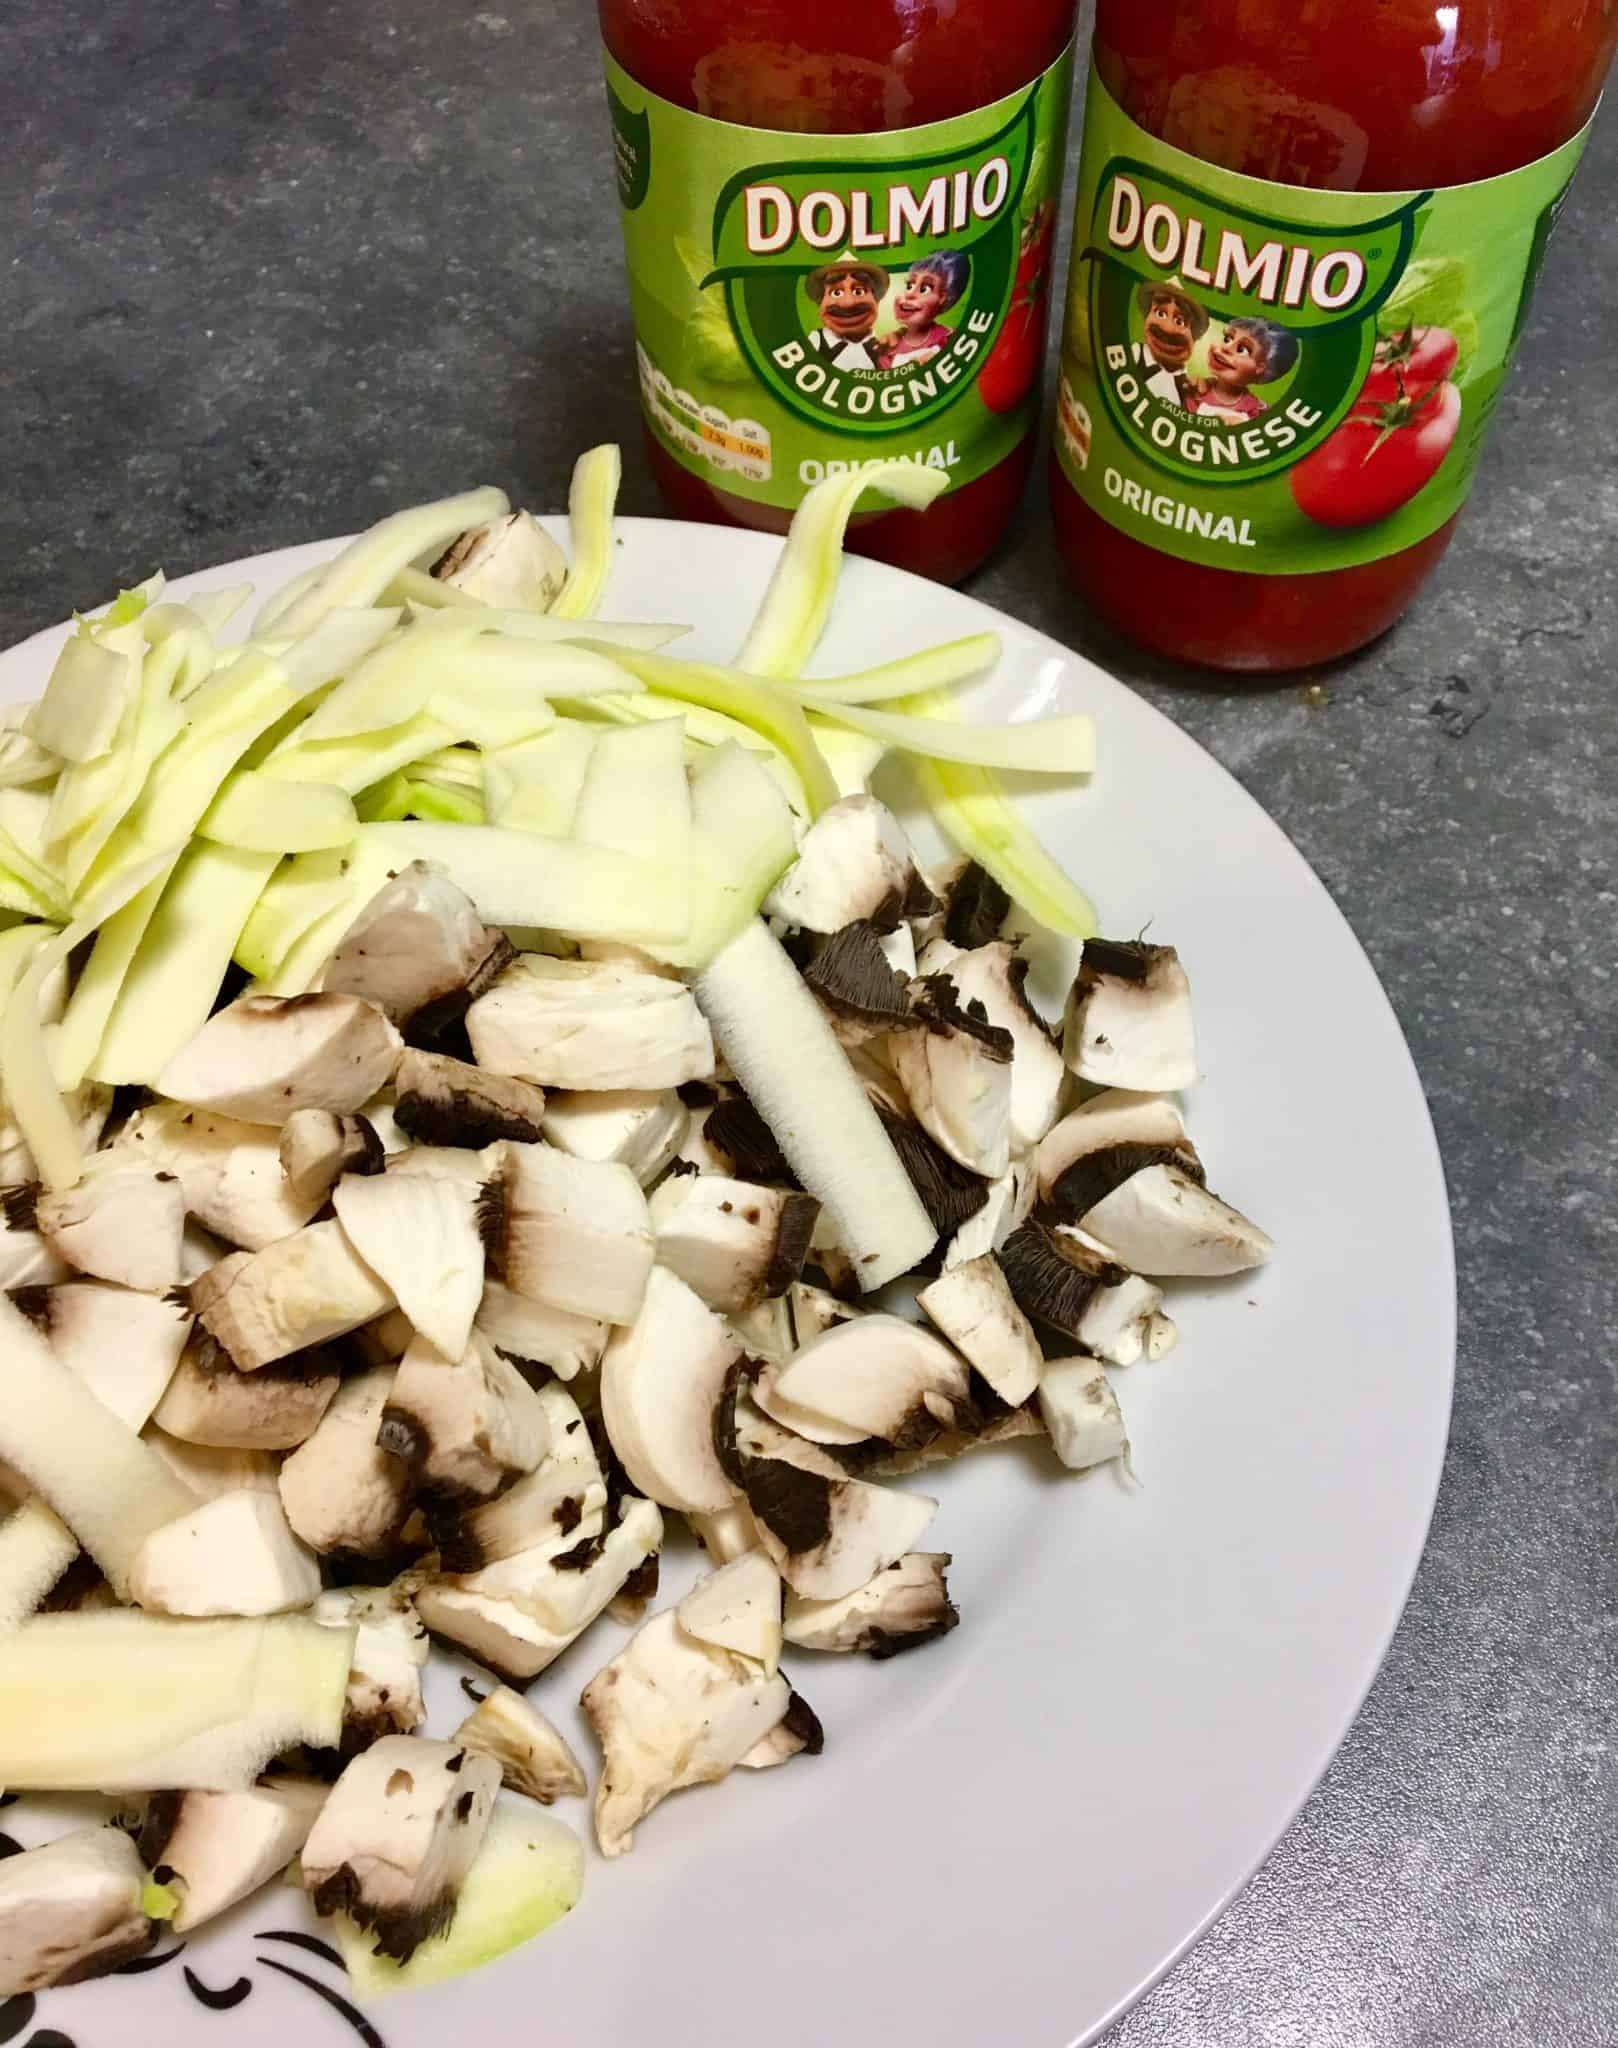 Dolmio Bolognese sauce with a plate of mushroom and courgette